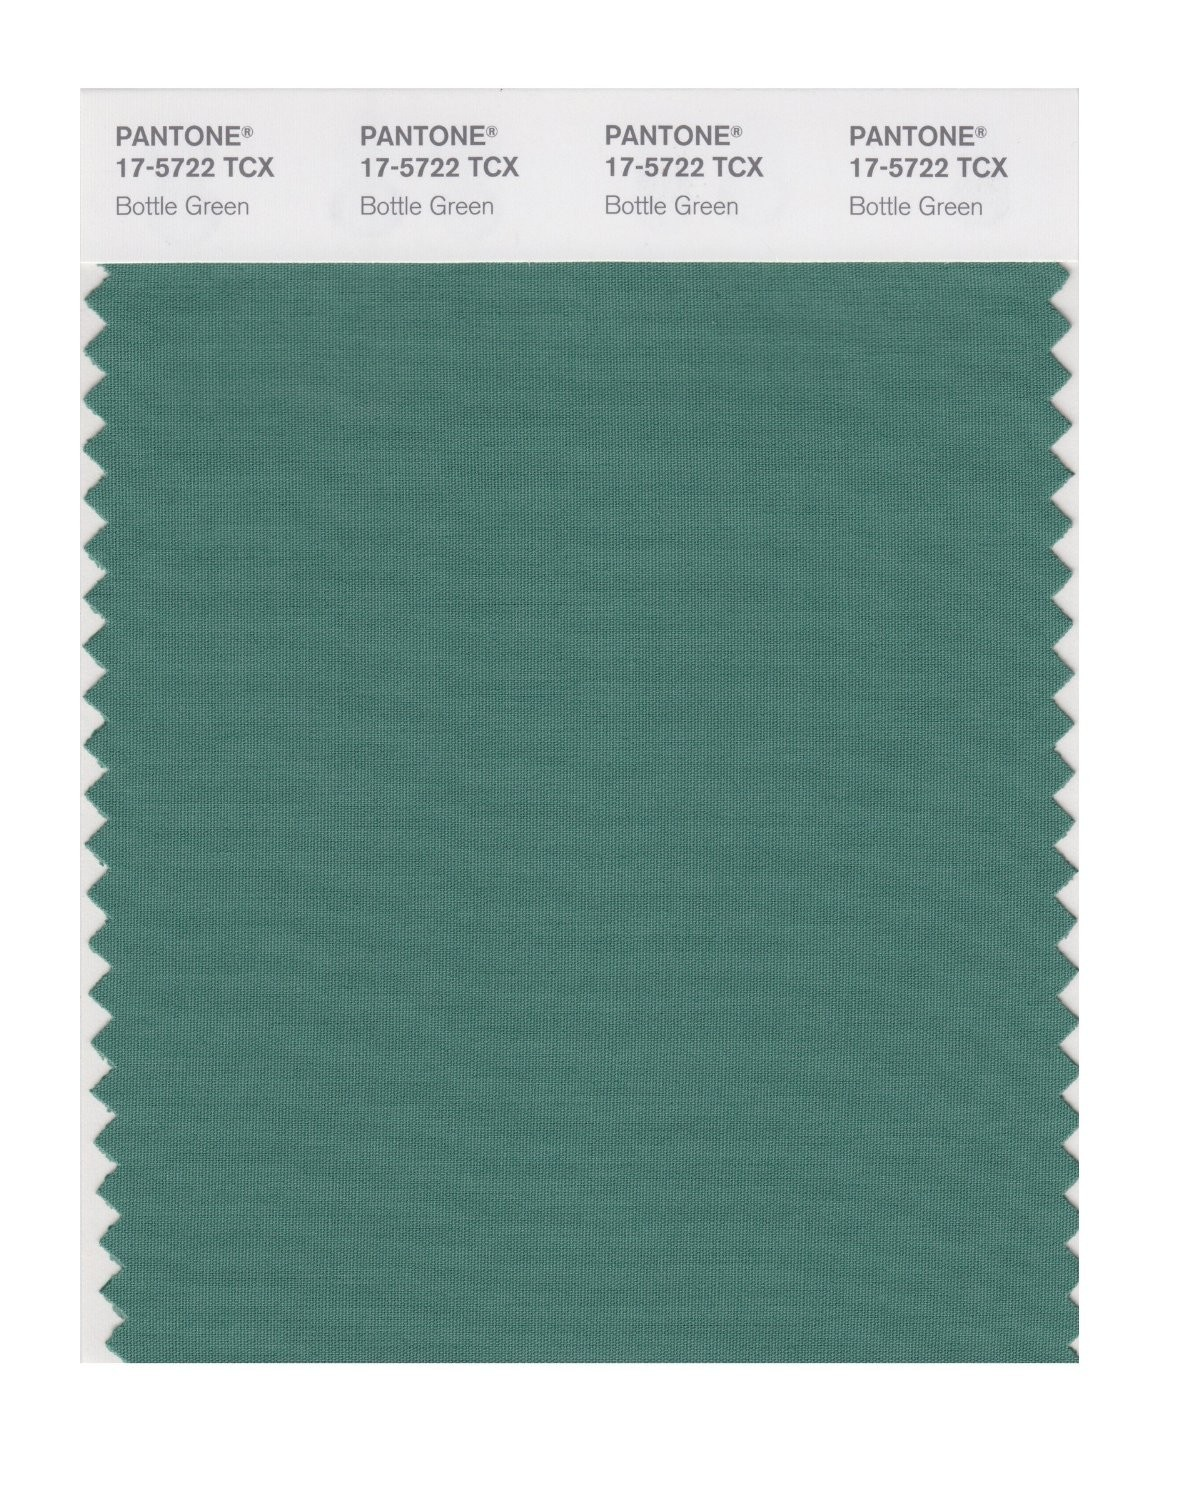 Pantone 17-5722 TCX Swatch Card Bottle Green